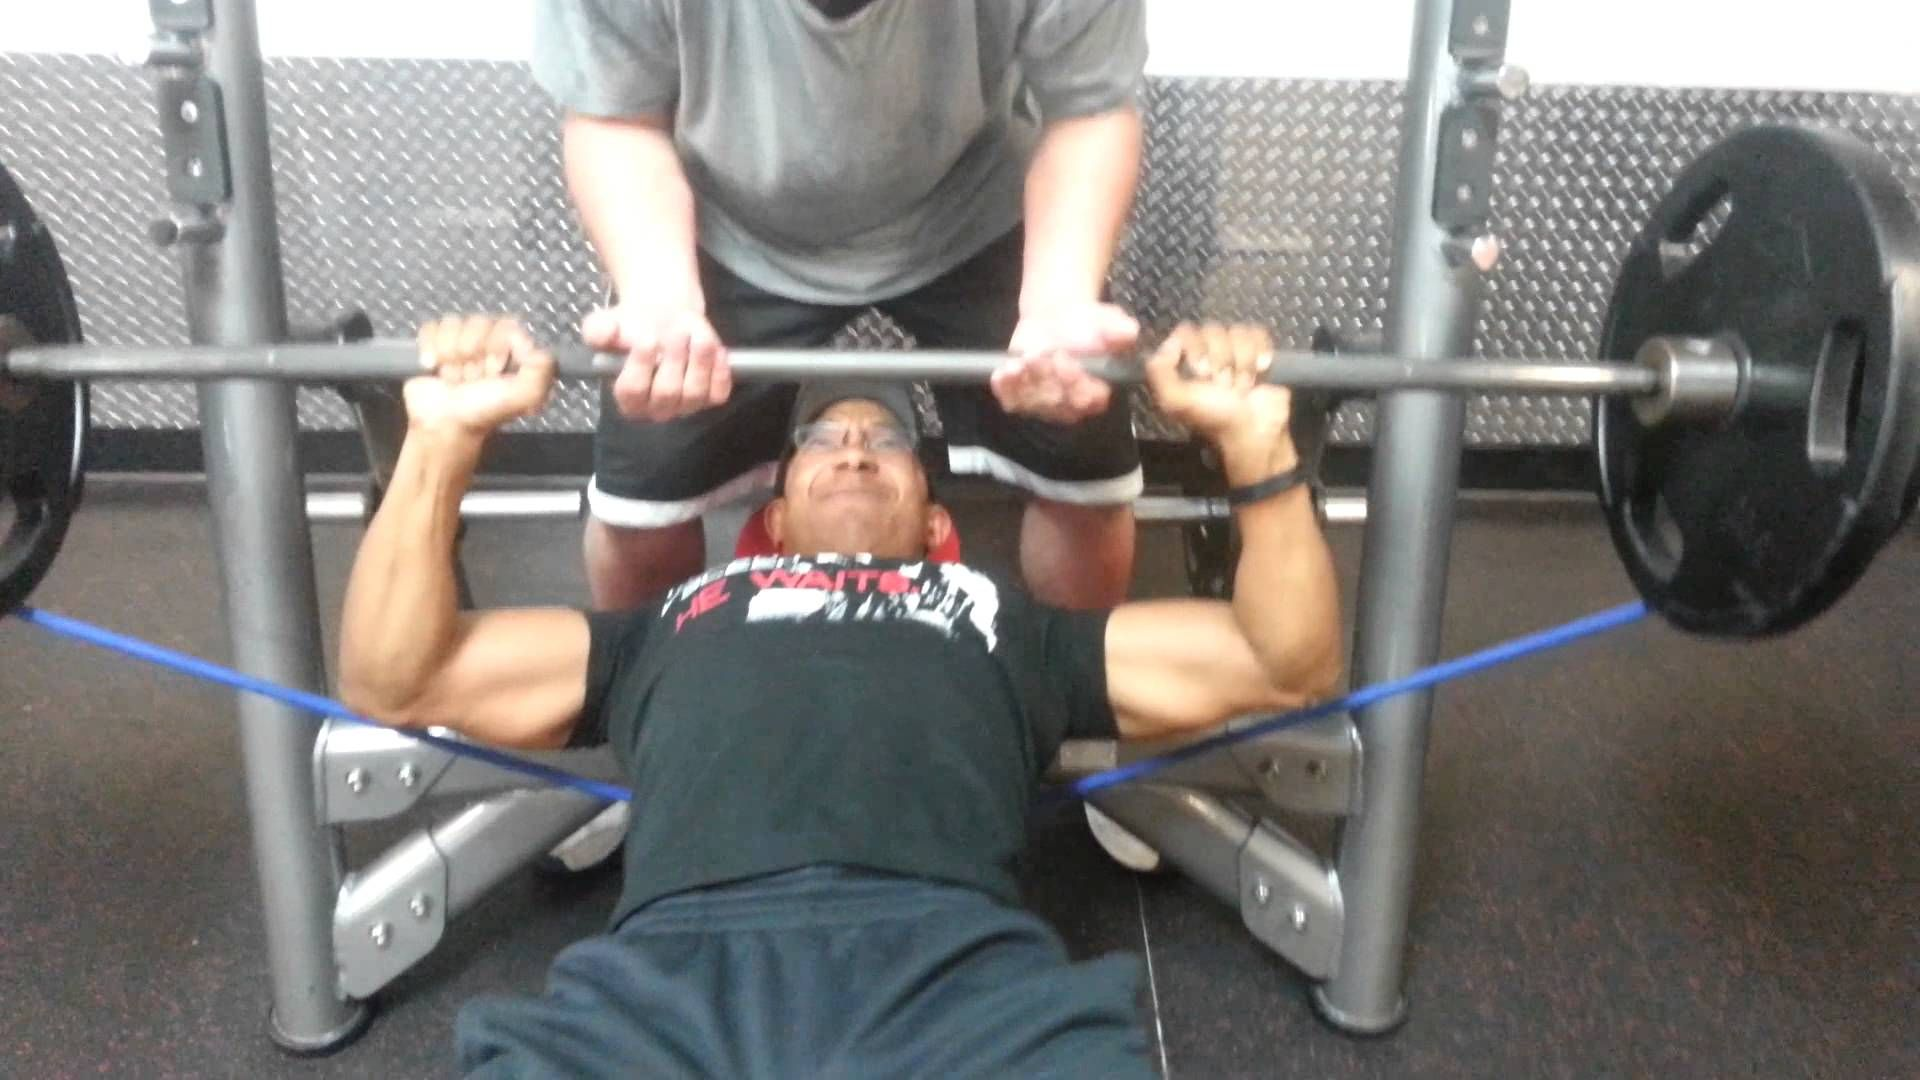 Bench Press With The Resistance Heavy Band Provides A Unique Form Of Stimulus On The Muscles Bench Press Resistance Band Fitness Inspiration